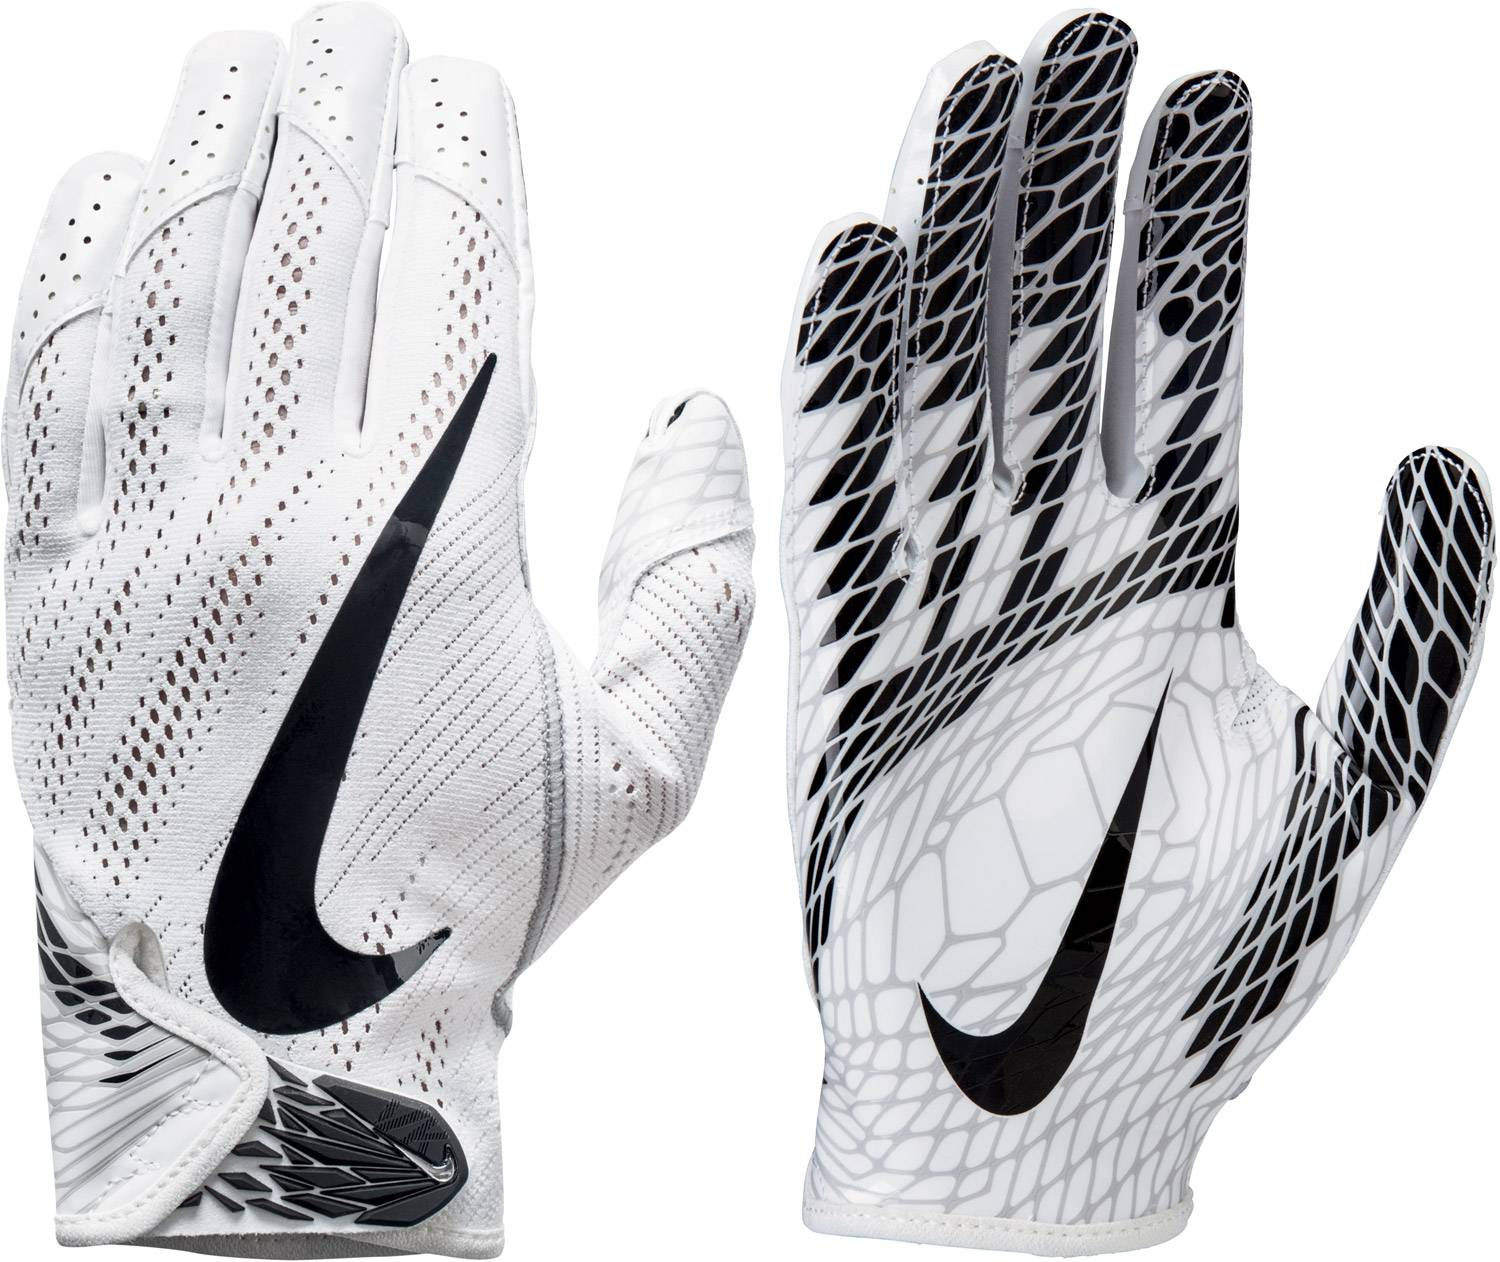 Nike Vapor Knit 2.0 Adult Football Gloves eb68dbf1fc72